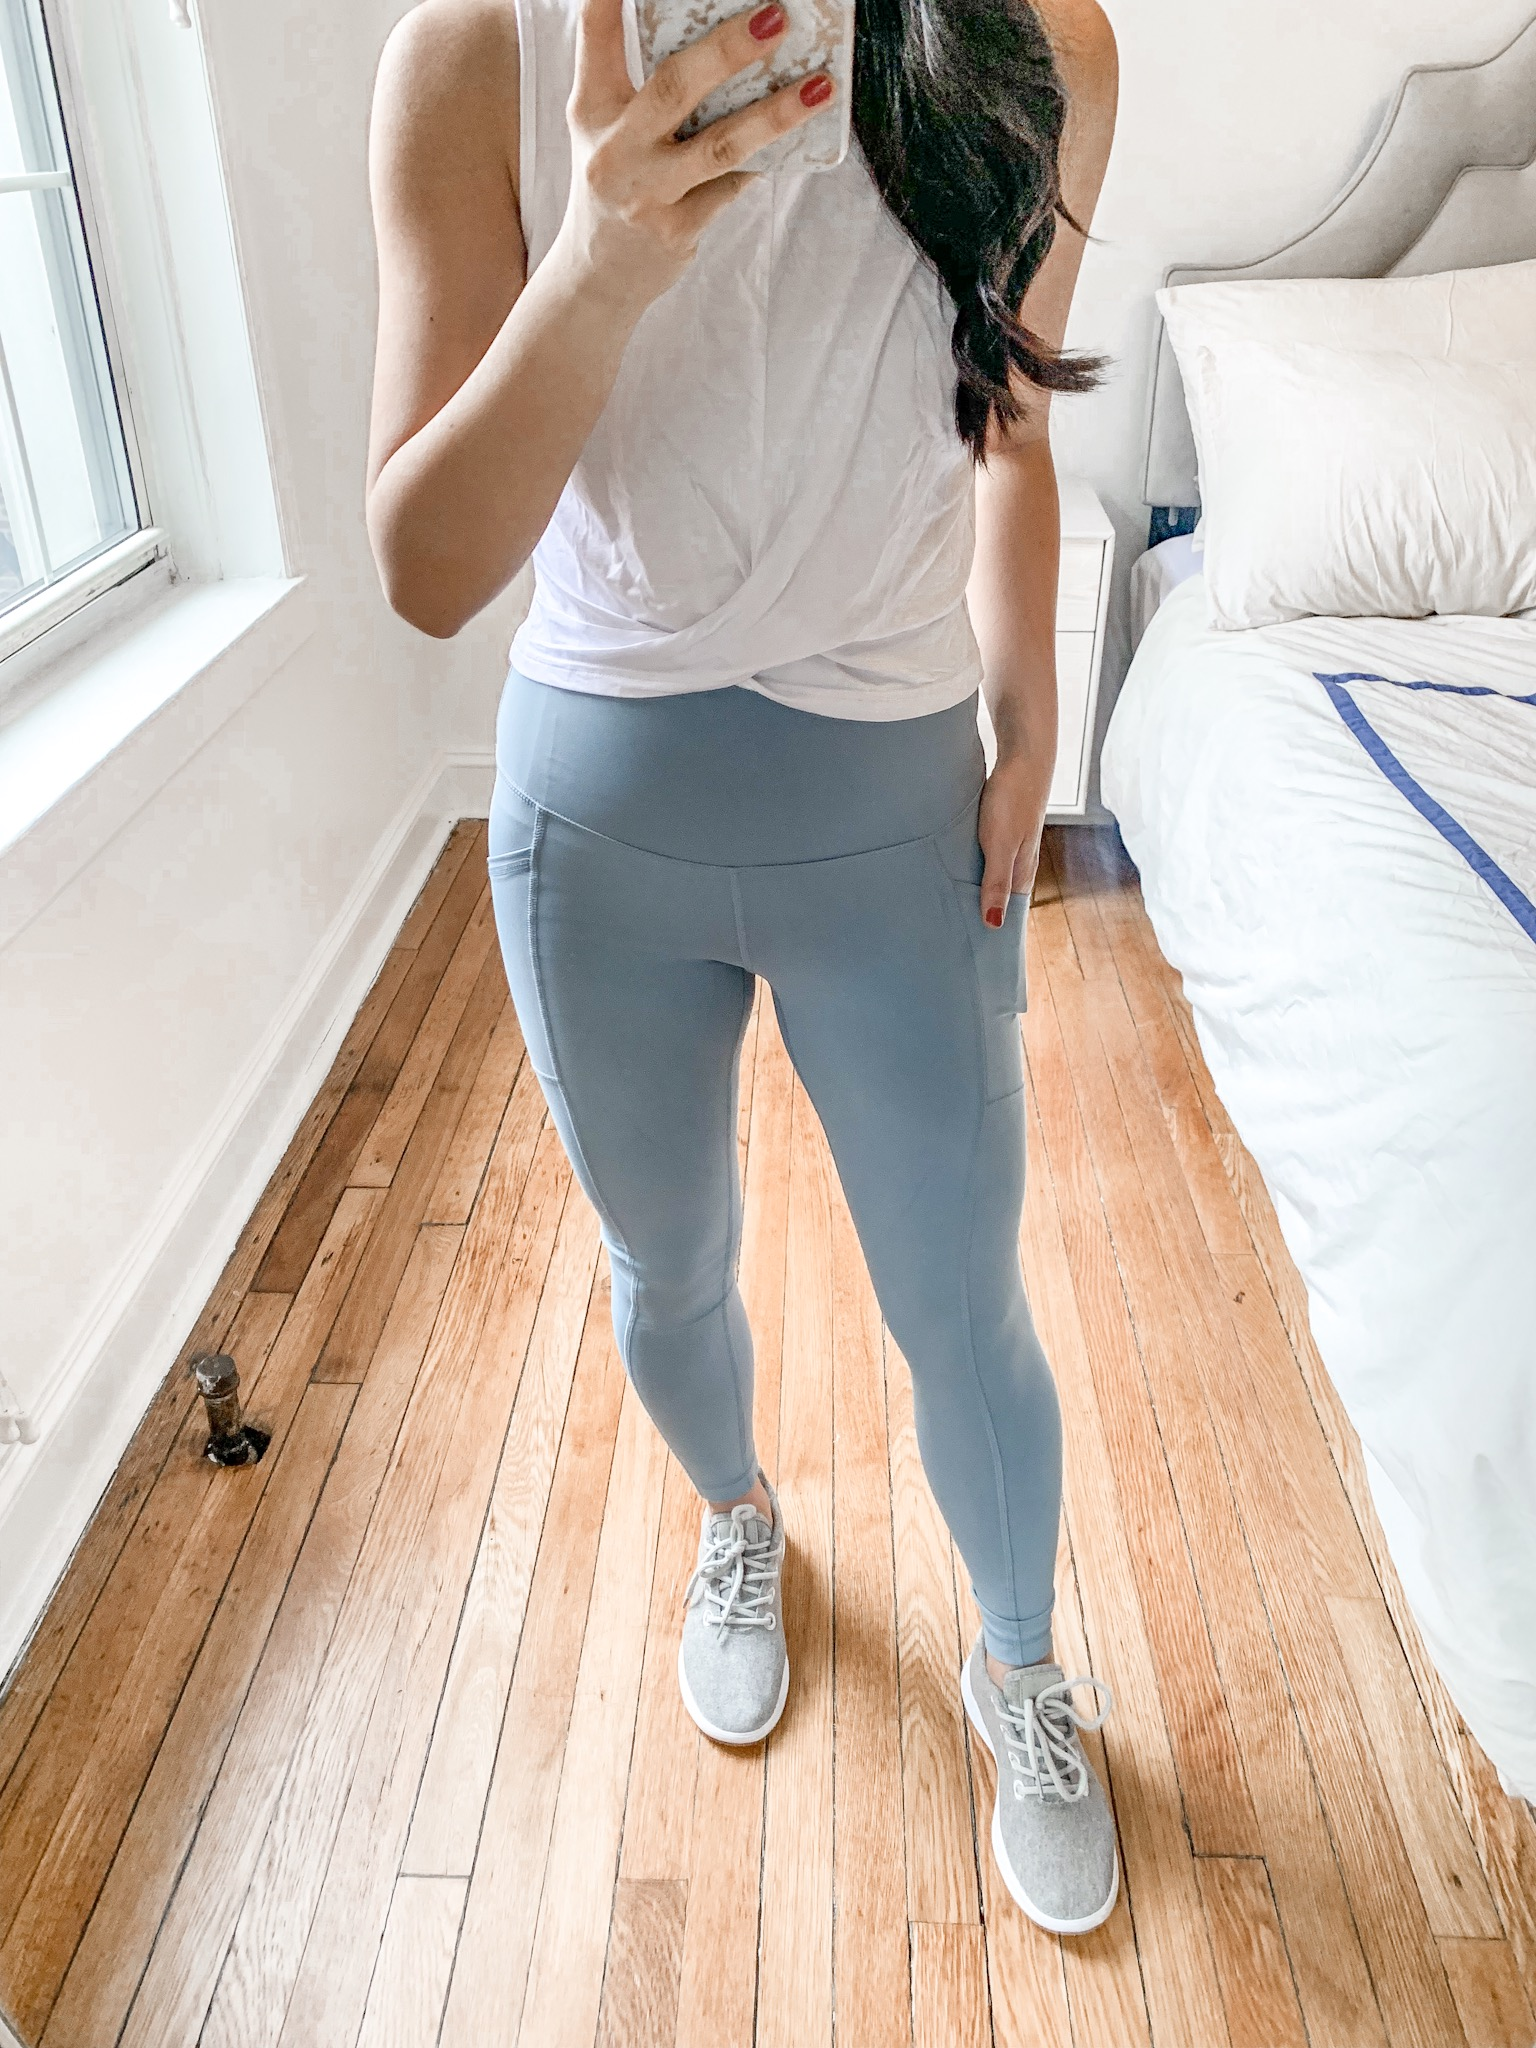 Workout Outfit / White Crop Top & Mint High Waisted Leggings